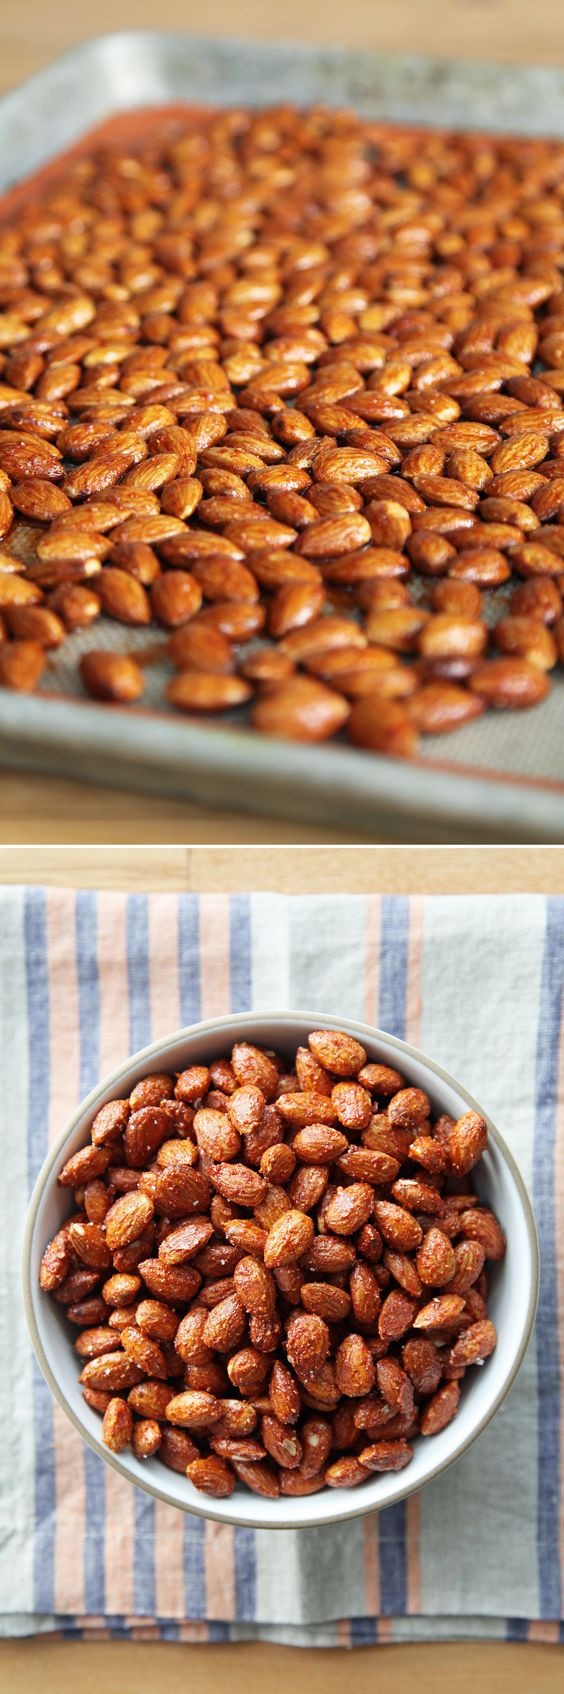 There are spiced nuts, and then there are SPICED nuts. While other ...